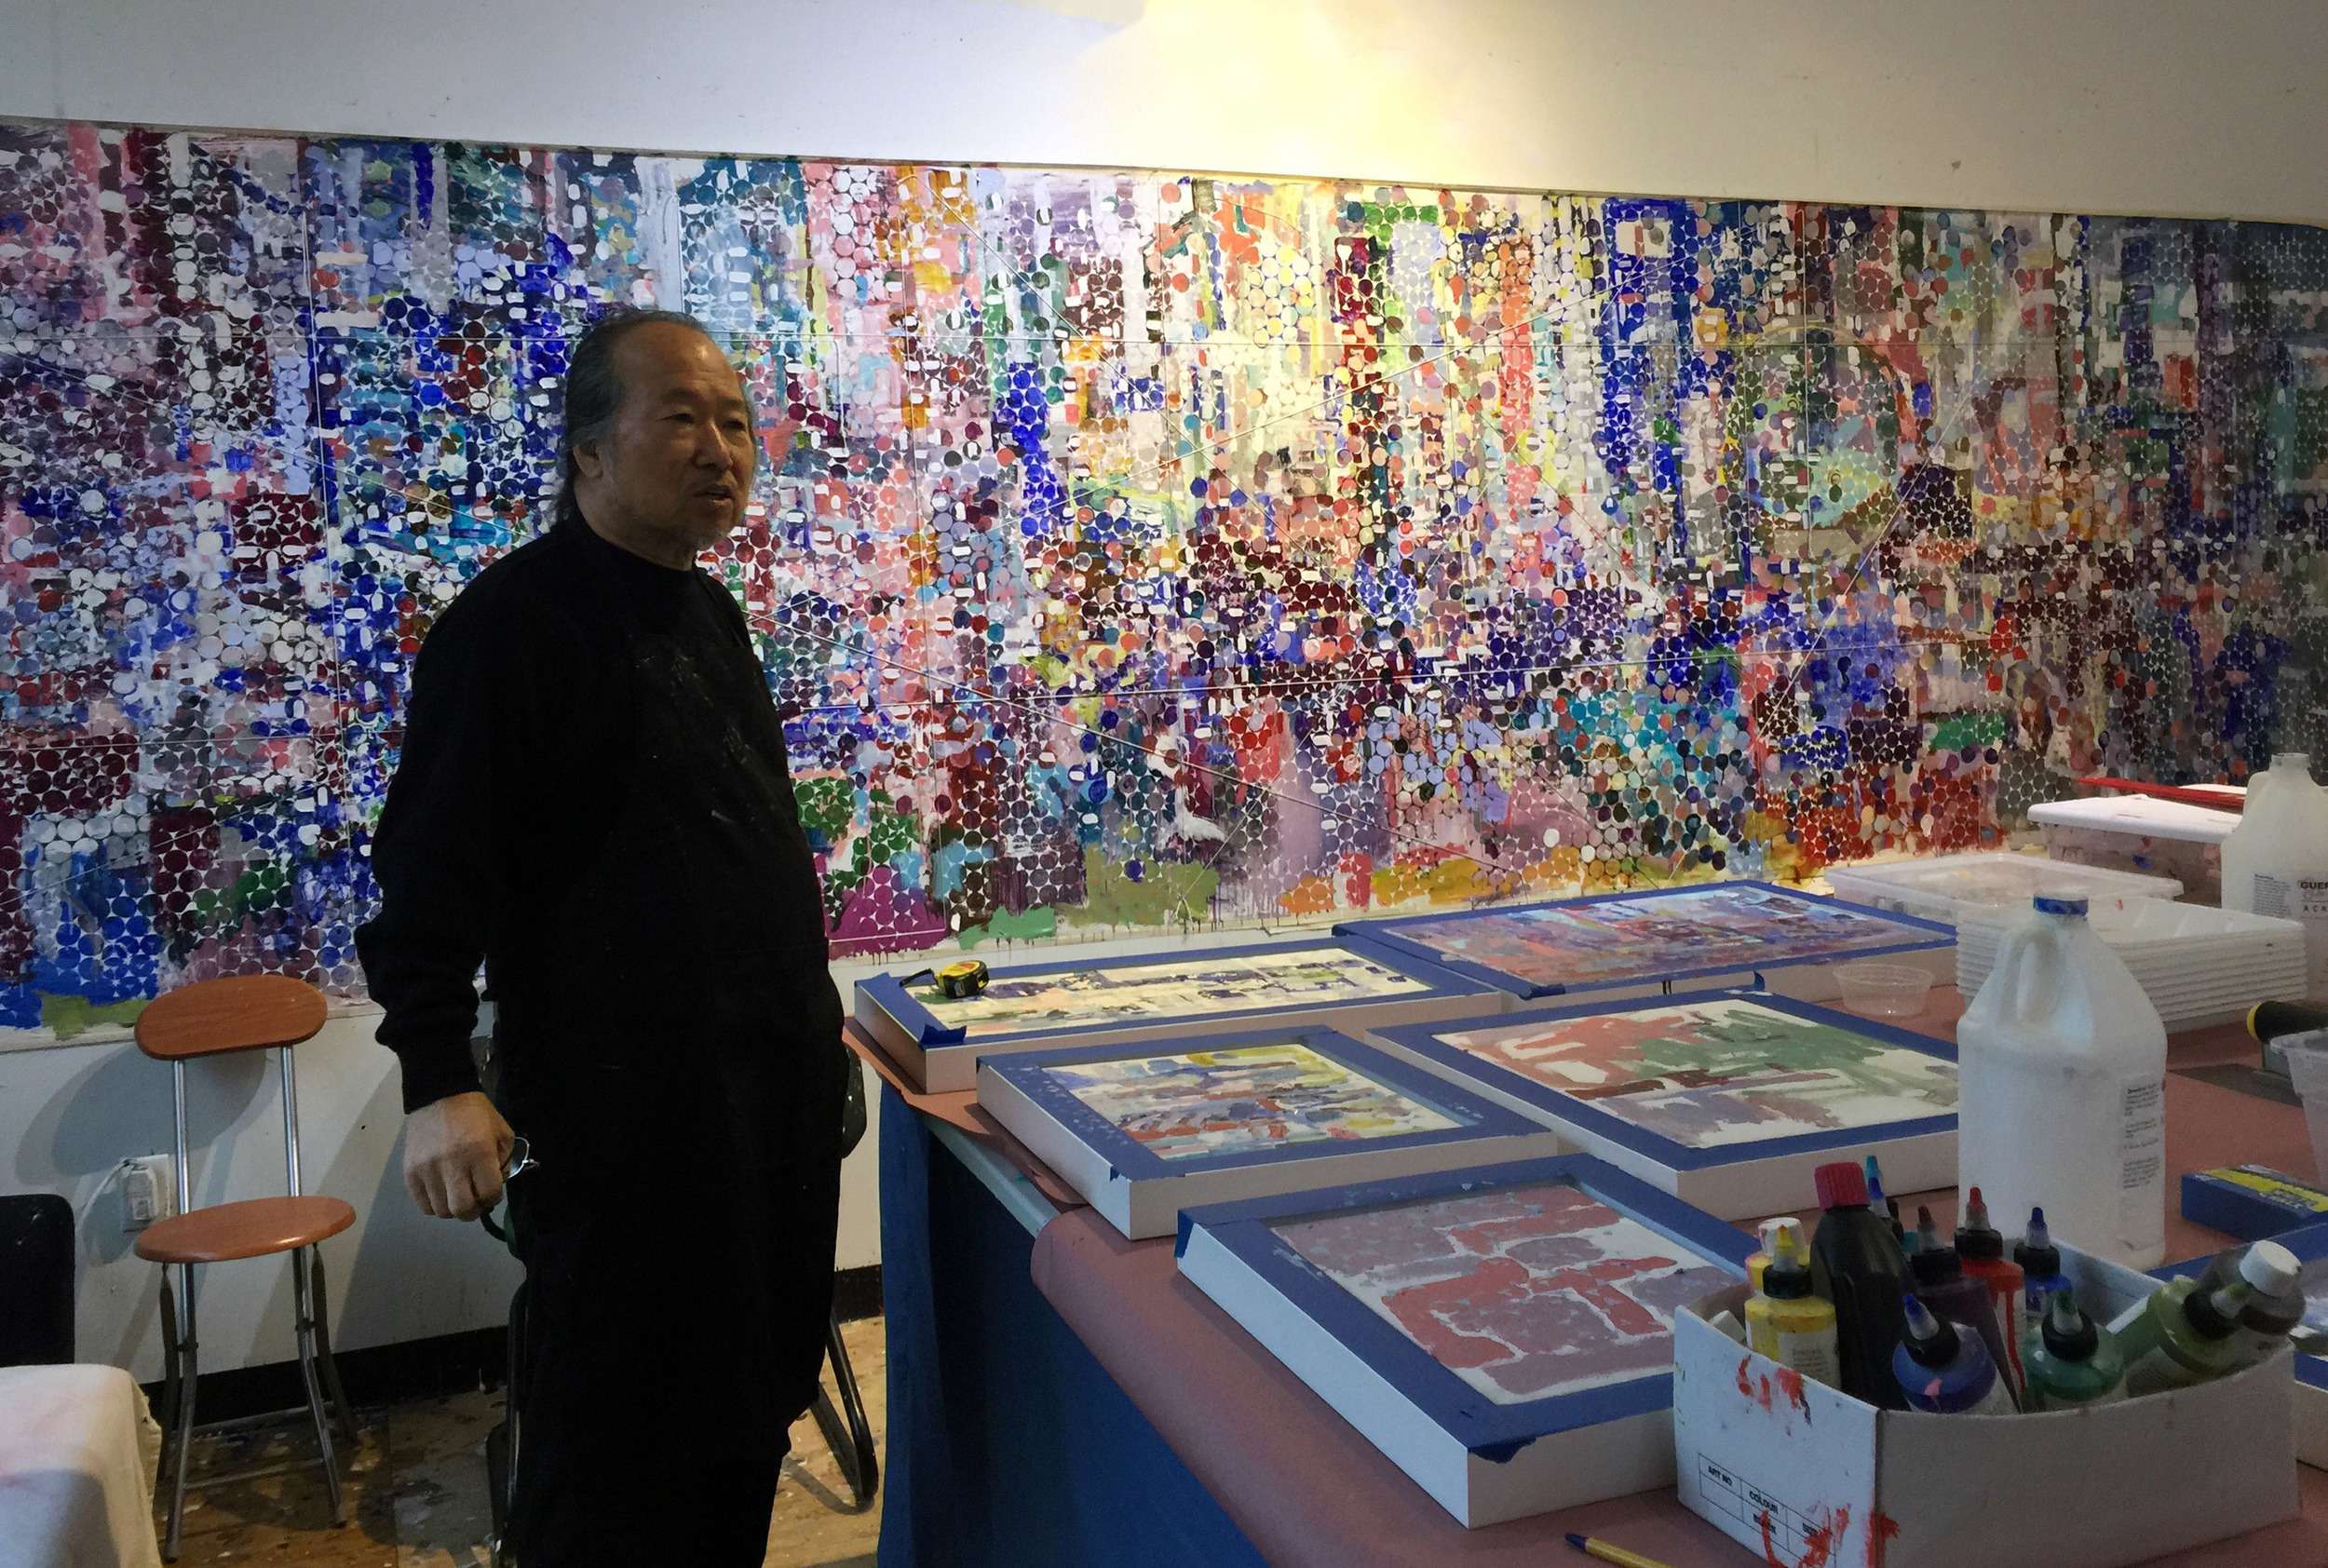 The artist standing in front of a work in progress